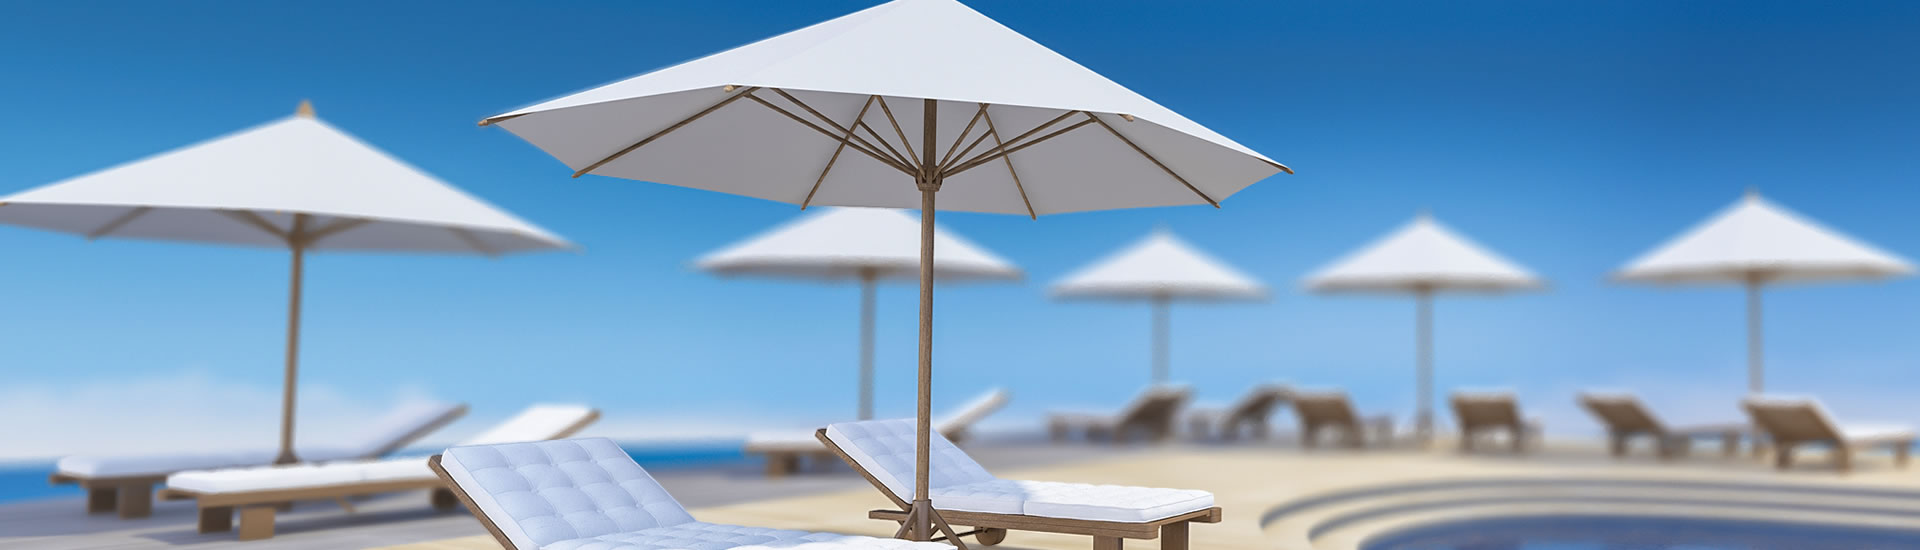 slider_daybed-and-umbrella_v2